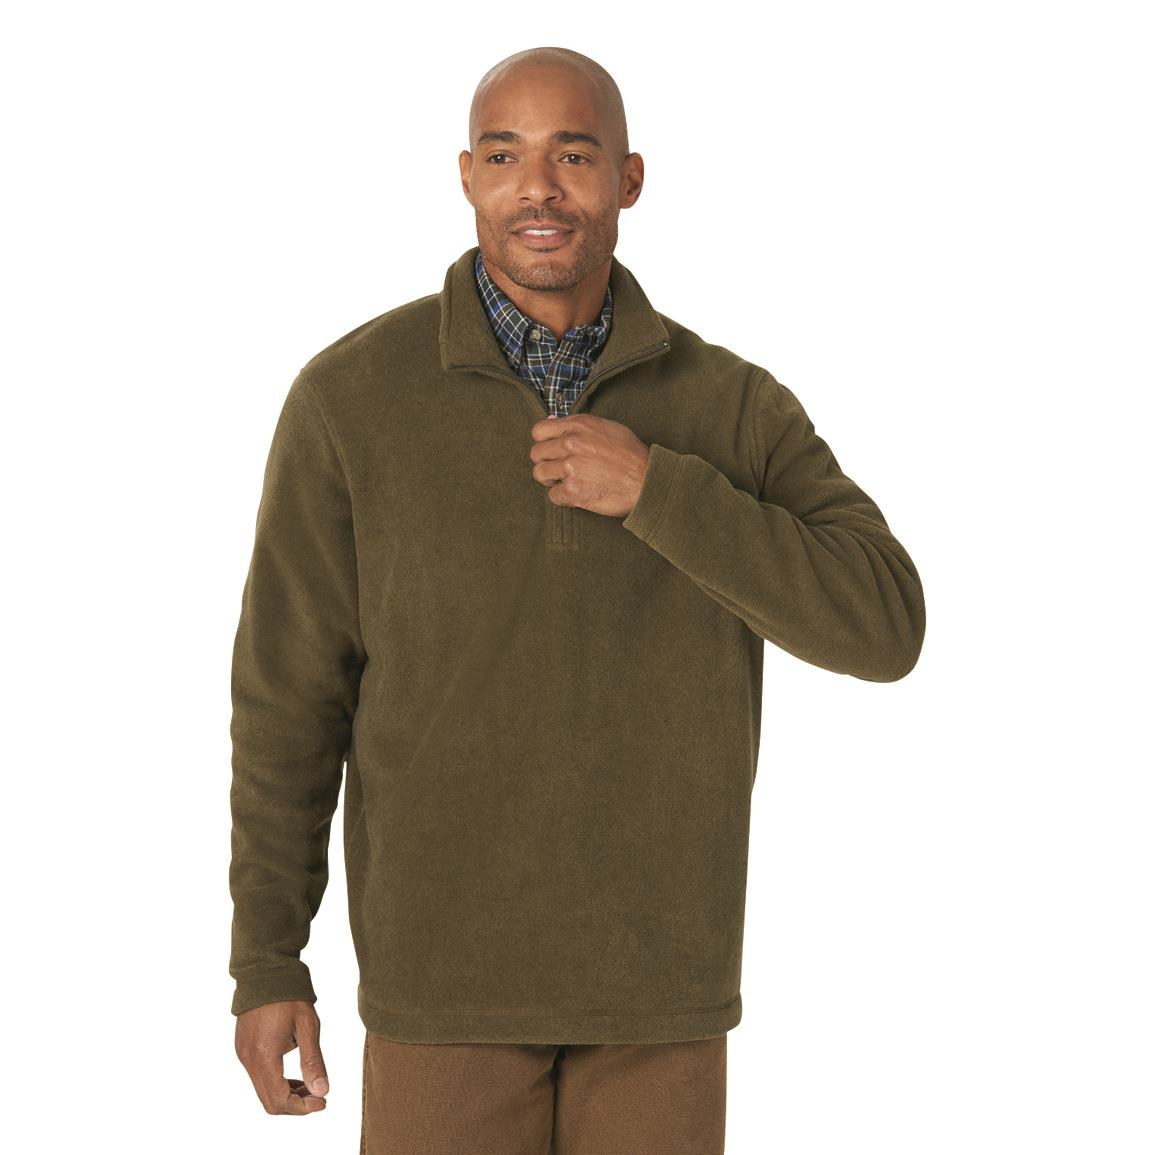 Wrangler Men's Quarter-zip Fleece Pullover Sweater, Olive Green